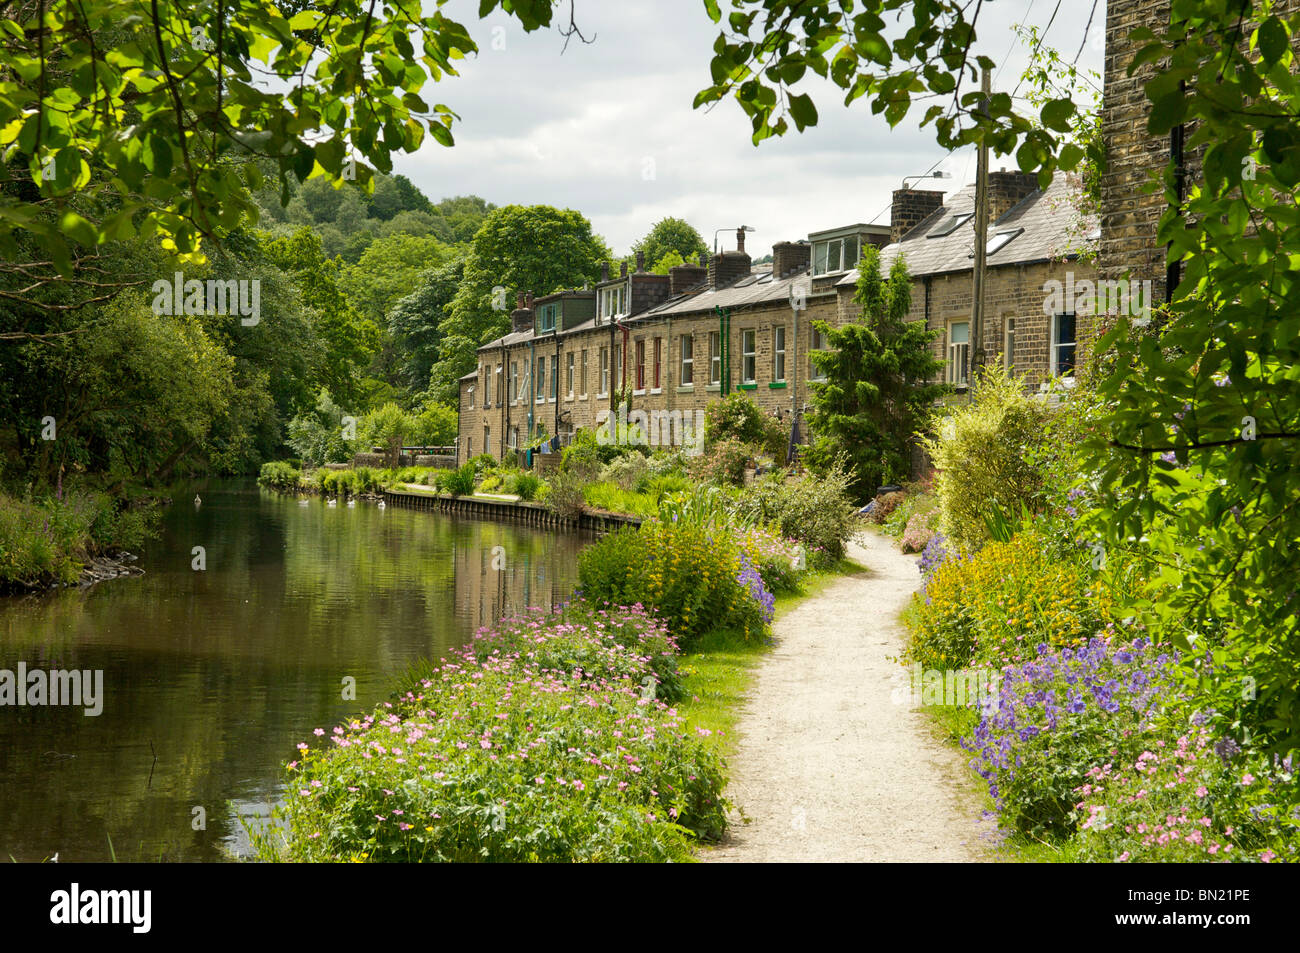 Stone built terraced houses on the banks of the rochdale canal at Hebden Bridge Yorkshire - Stock Image